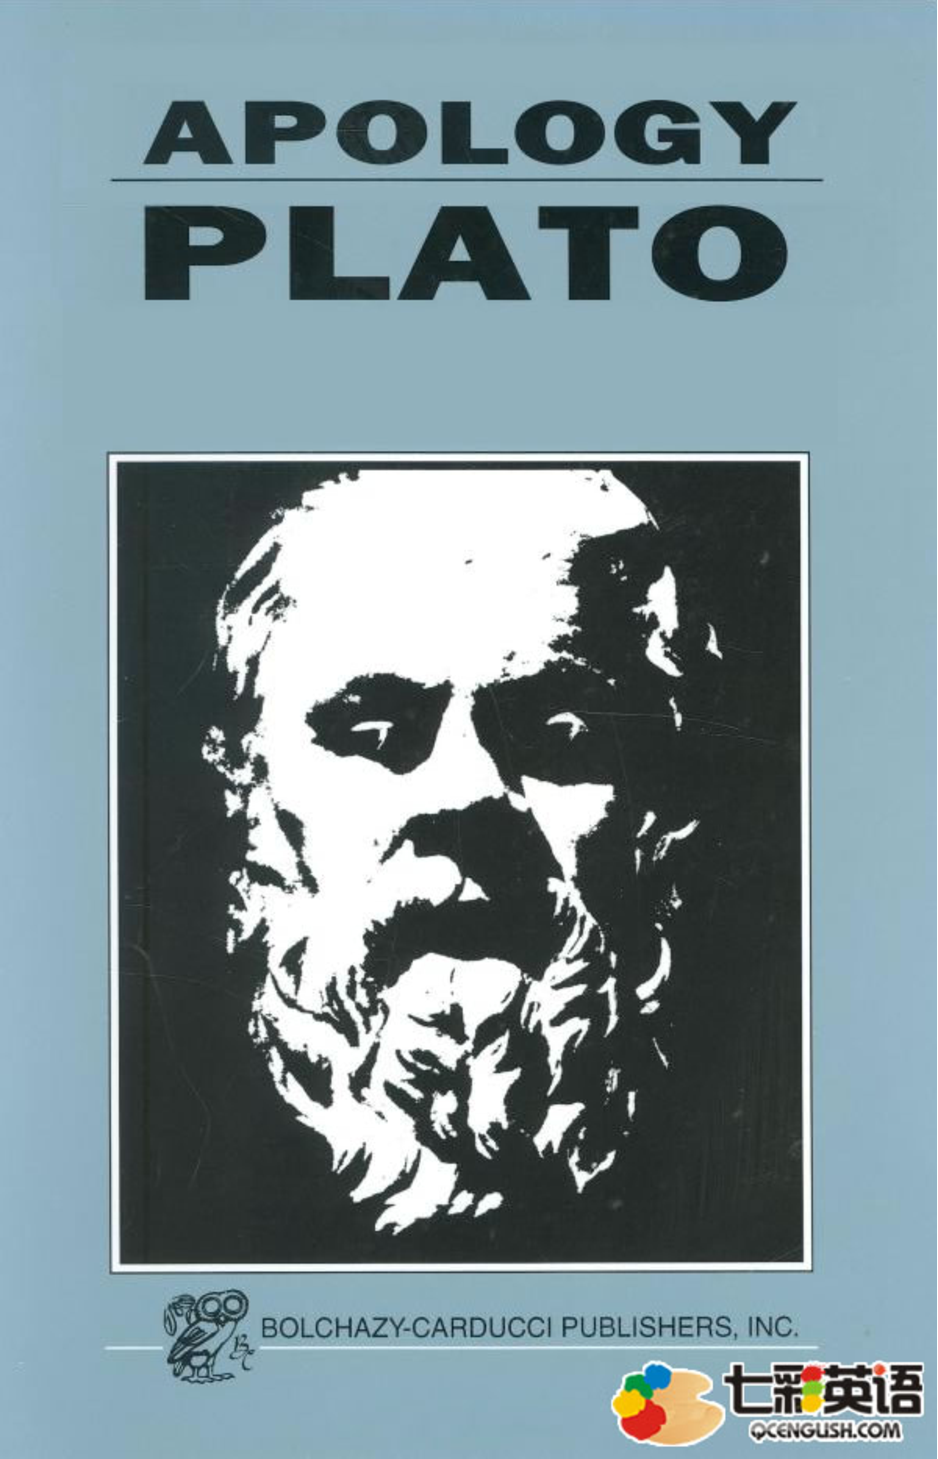 an analysis of platos dialogue apology This claim, if true, forms a suitable basis for socrates' defense of himself that it does so serves as further evidence for the interpretation of sophia as sophrosune keywords: apology, elenchus, knowledge, moderation, socrates, wisdom 1 introduction from plato's early dialogues one often has the impression that rational.